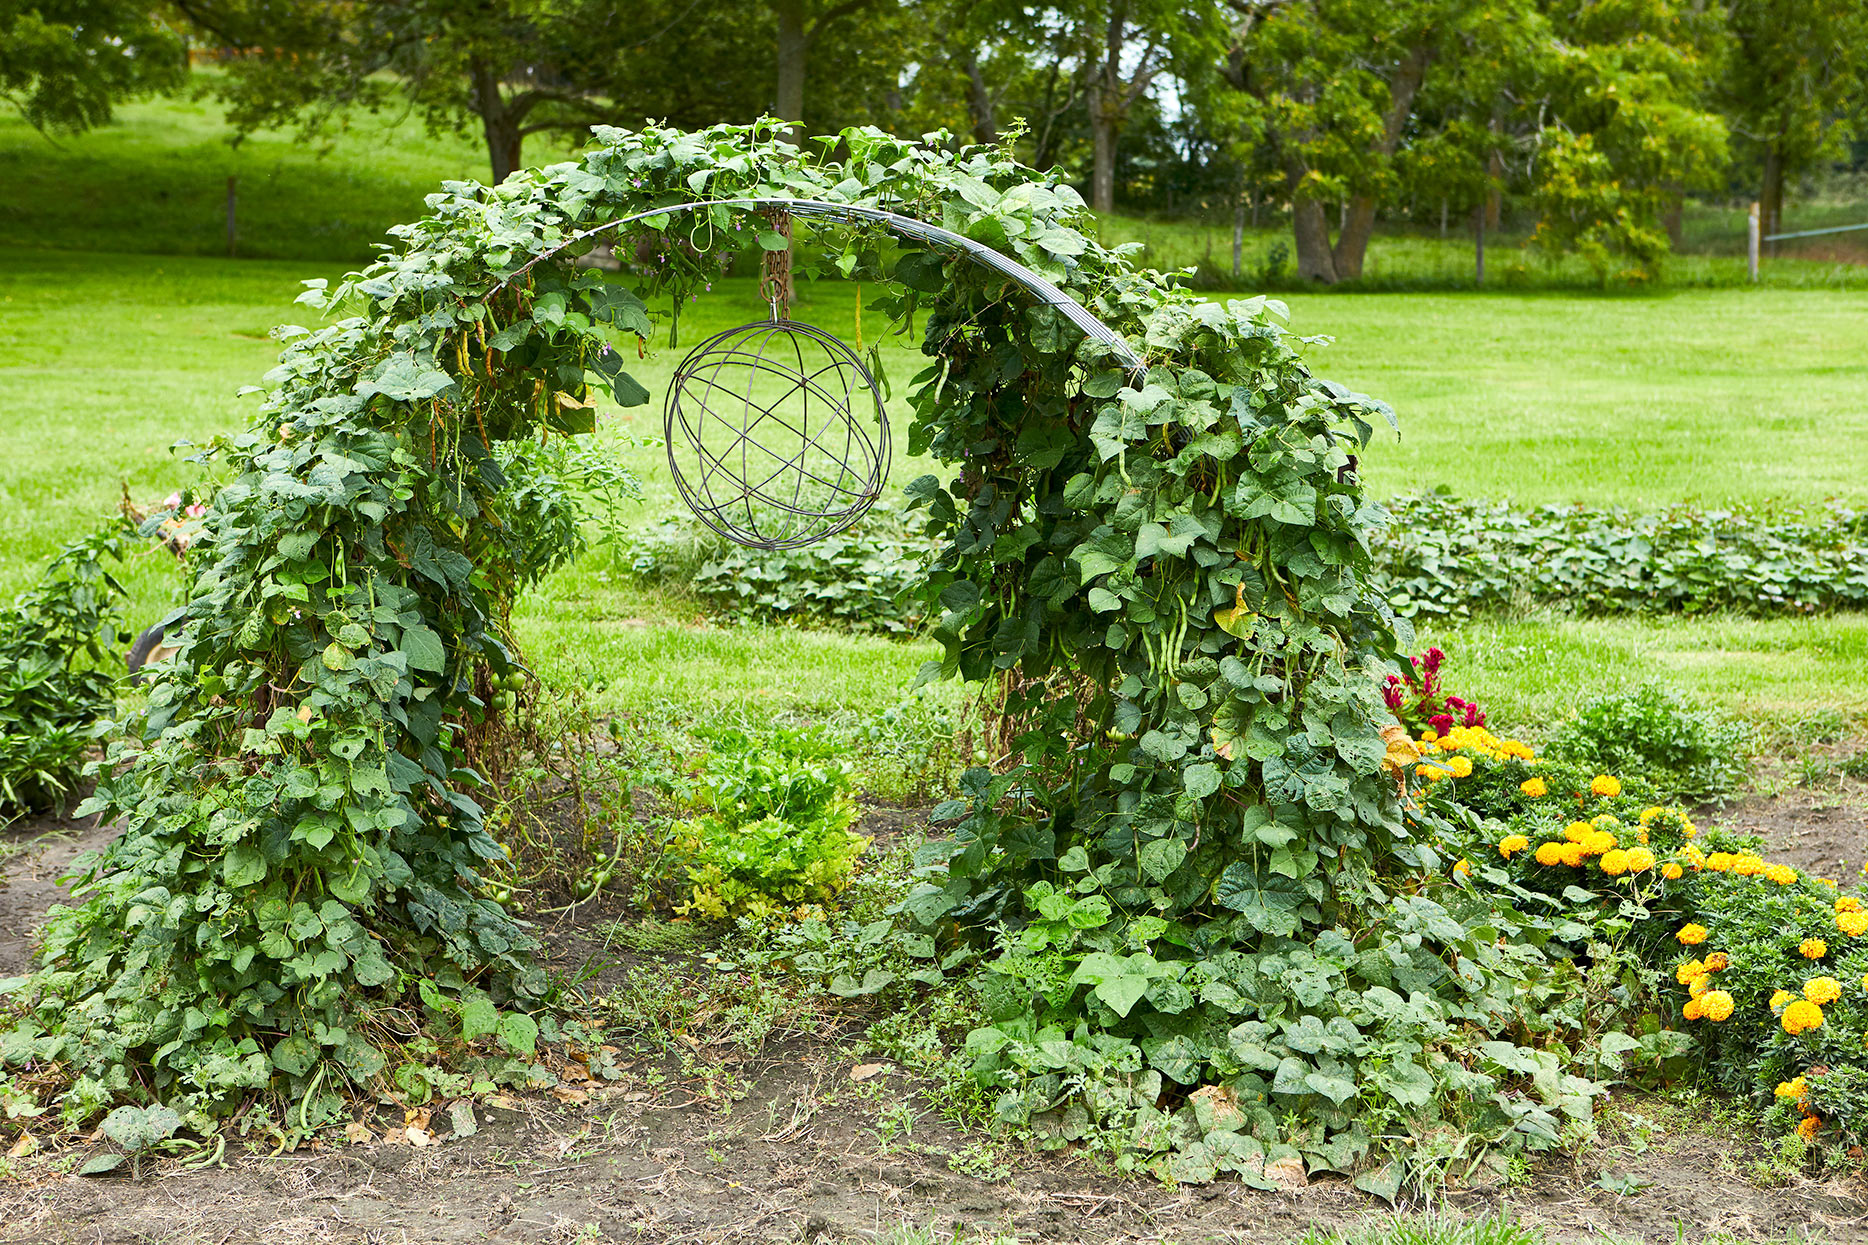 arched trellis with mature bean plant